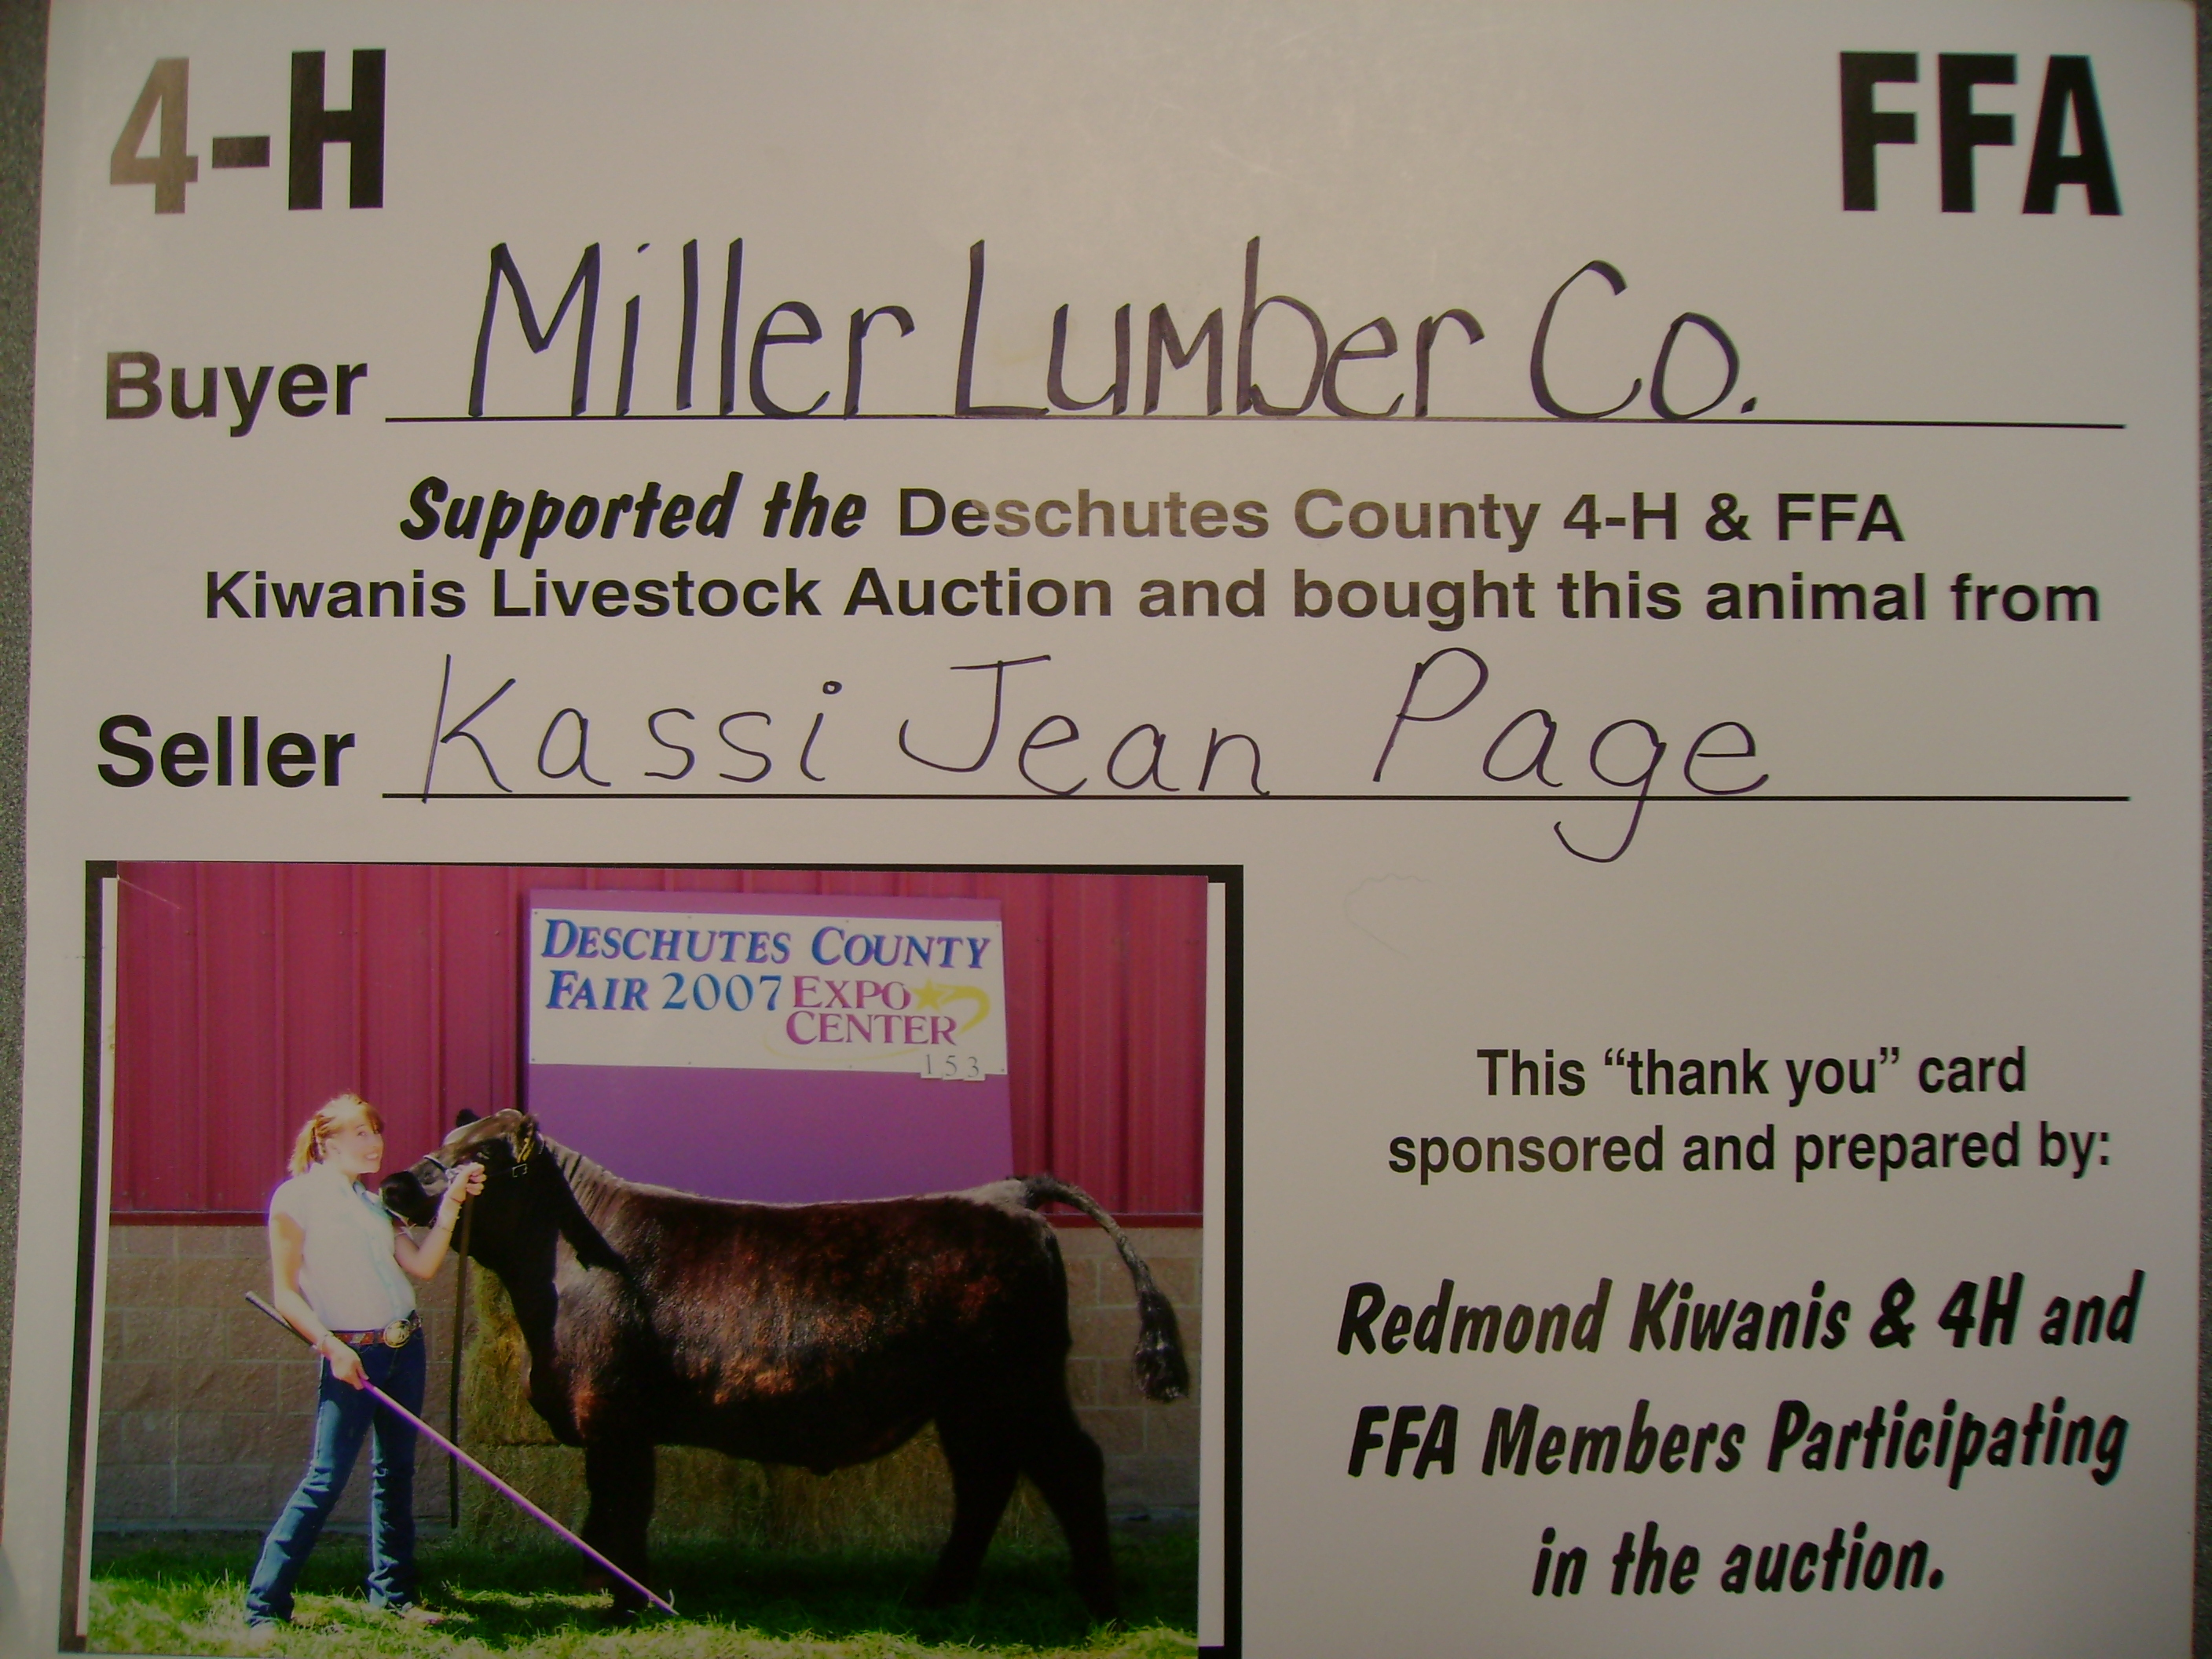 Every year, Miller Lumber supports 4-H and FFA by participating in the auctions at the Deschutes County Fair.